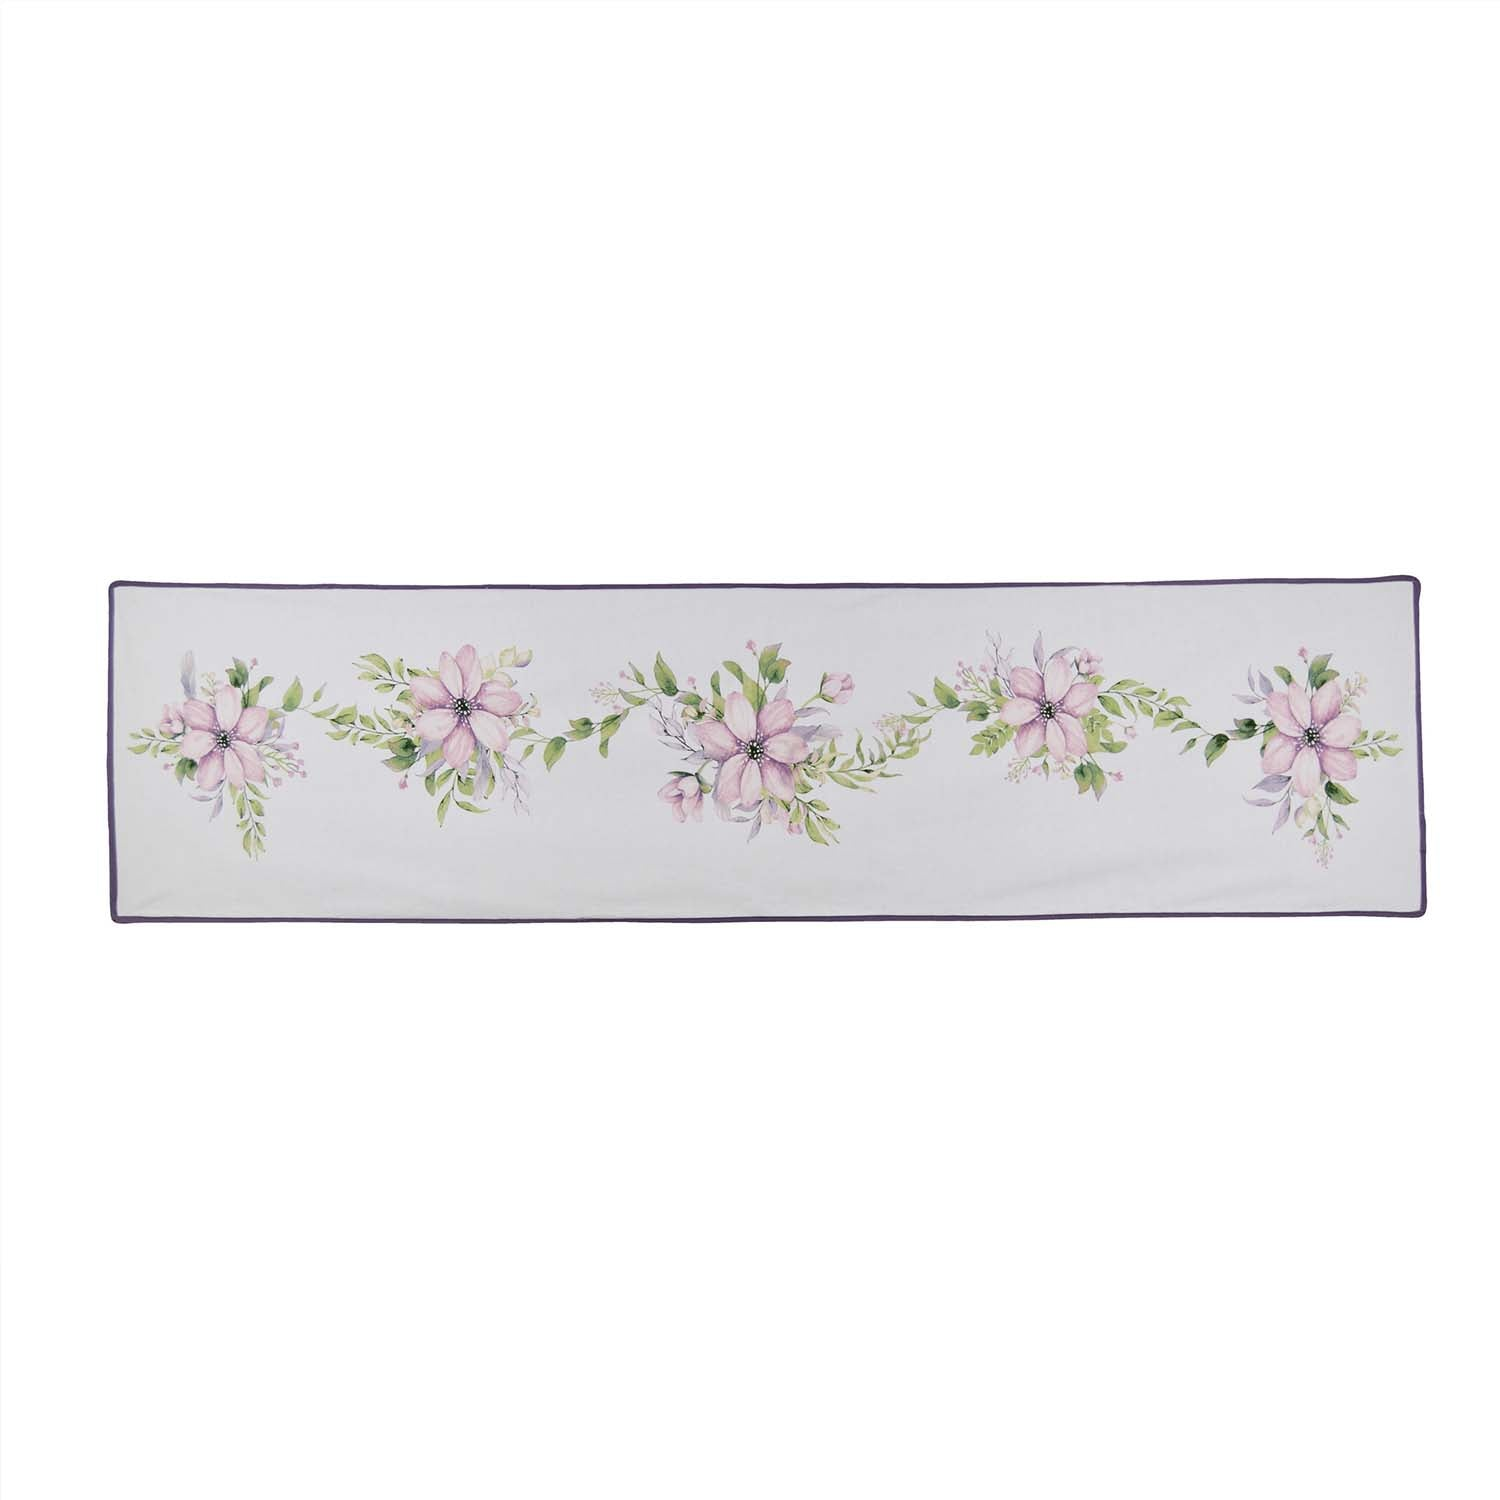 Forget Me Not Window Valance Window Valance By Donna Sharp